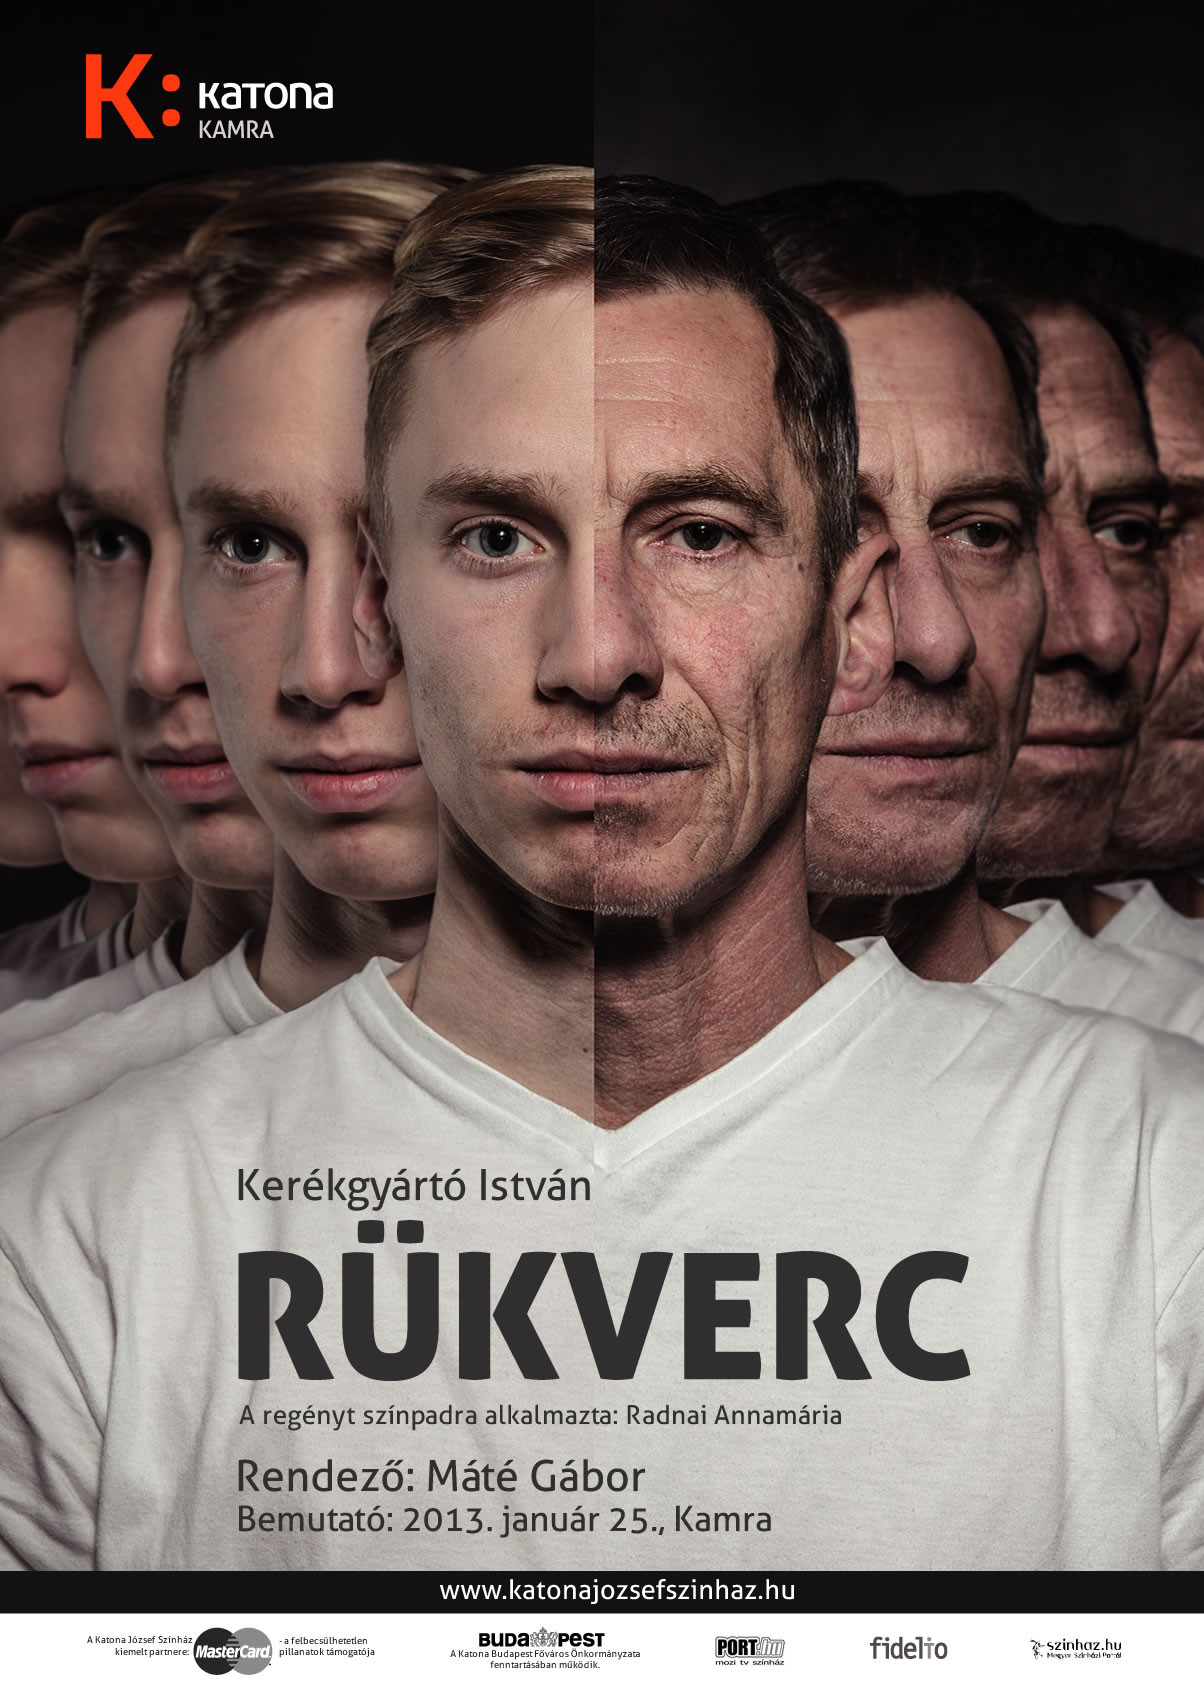 rukverc flyer_vegleges